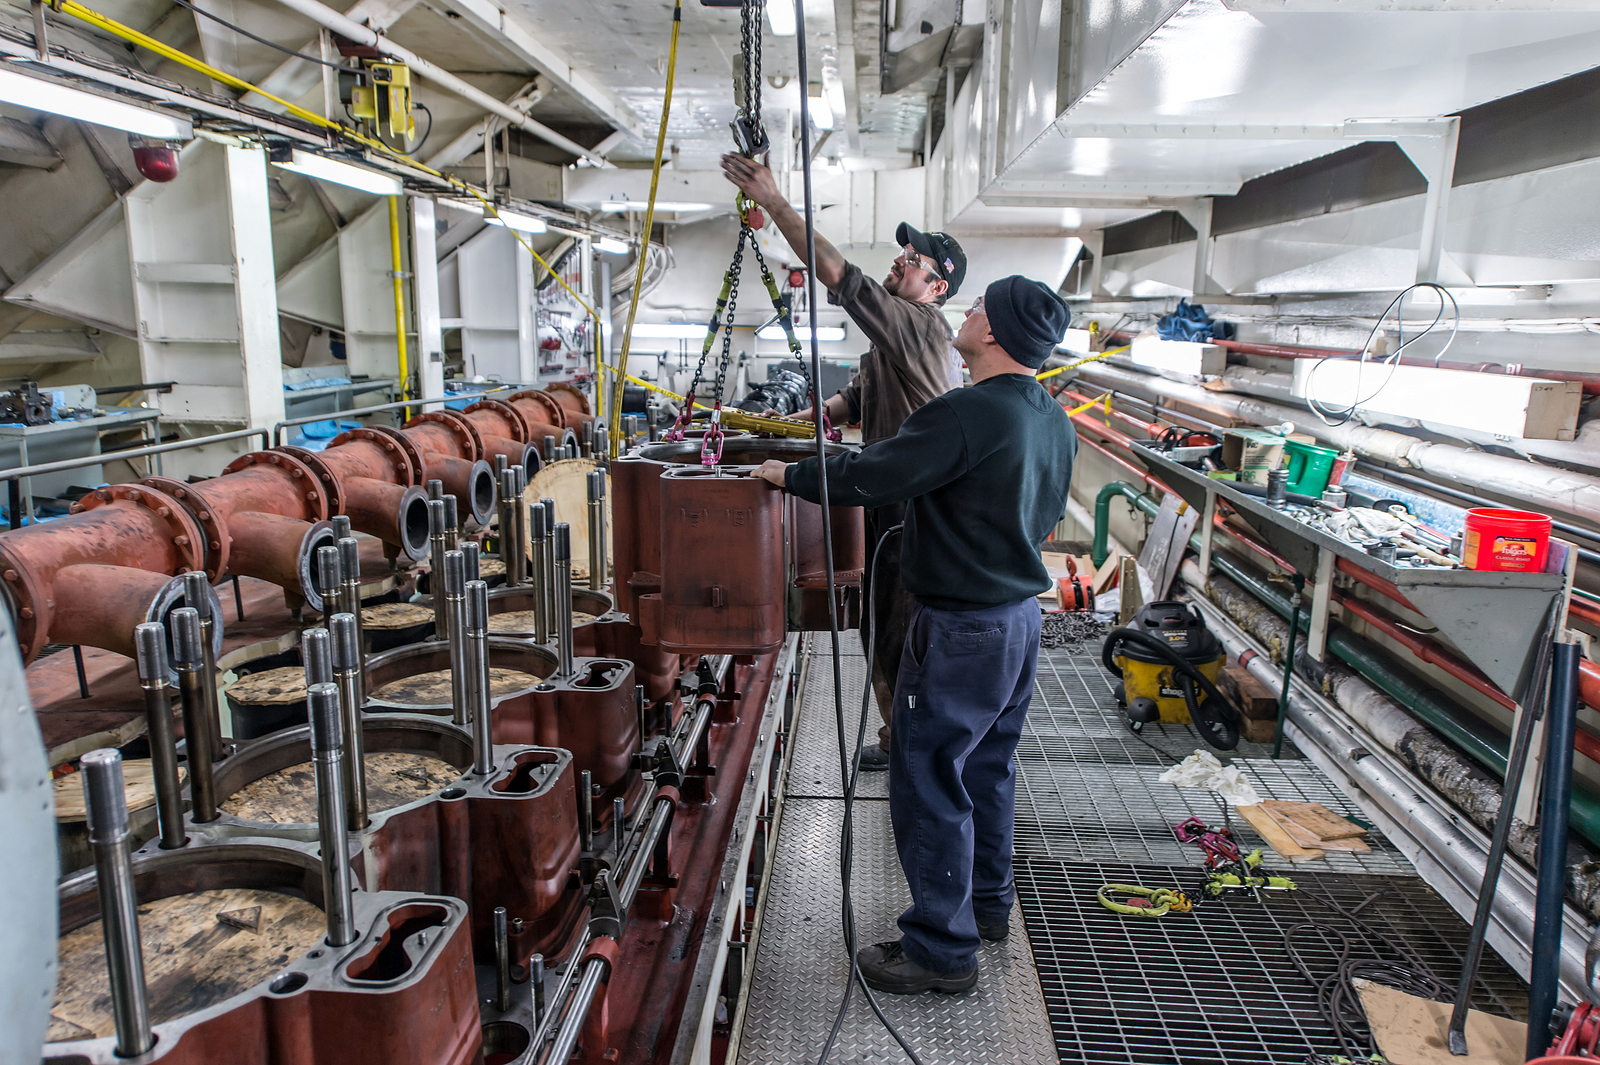 On the Edwin H. Gott, Michael Kolenda (foreground), Great Lakes Fleet engineer, and Aurel Carina, MaK service engineer, remove heads from the starboard main engine as it undergoes a complete overhaul, part of routine winter maintenance. Credit: Robert Welton